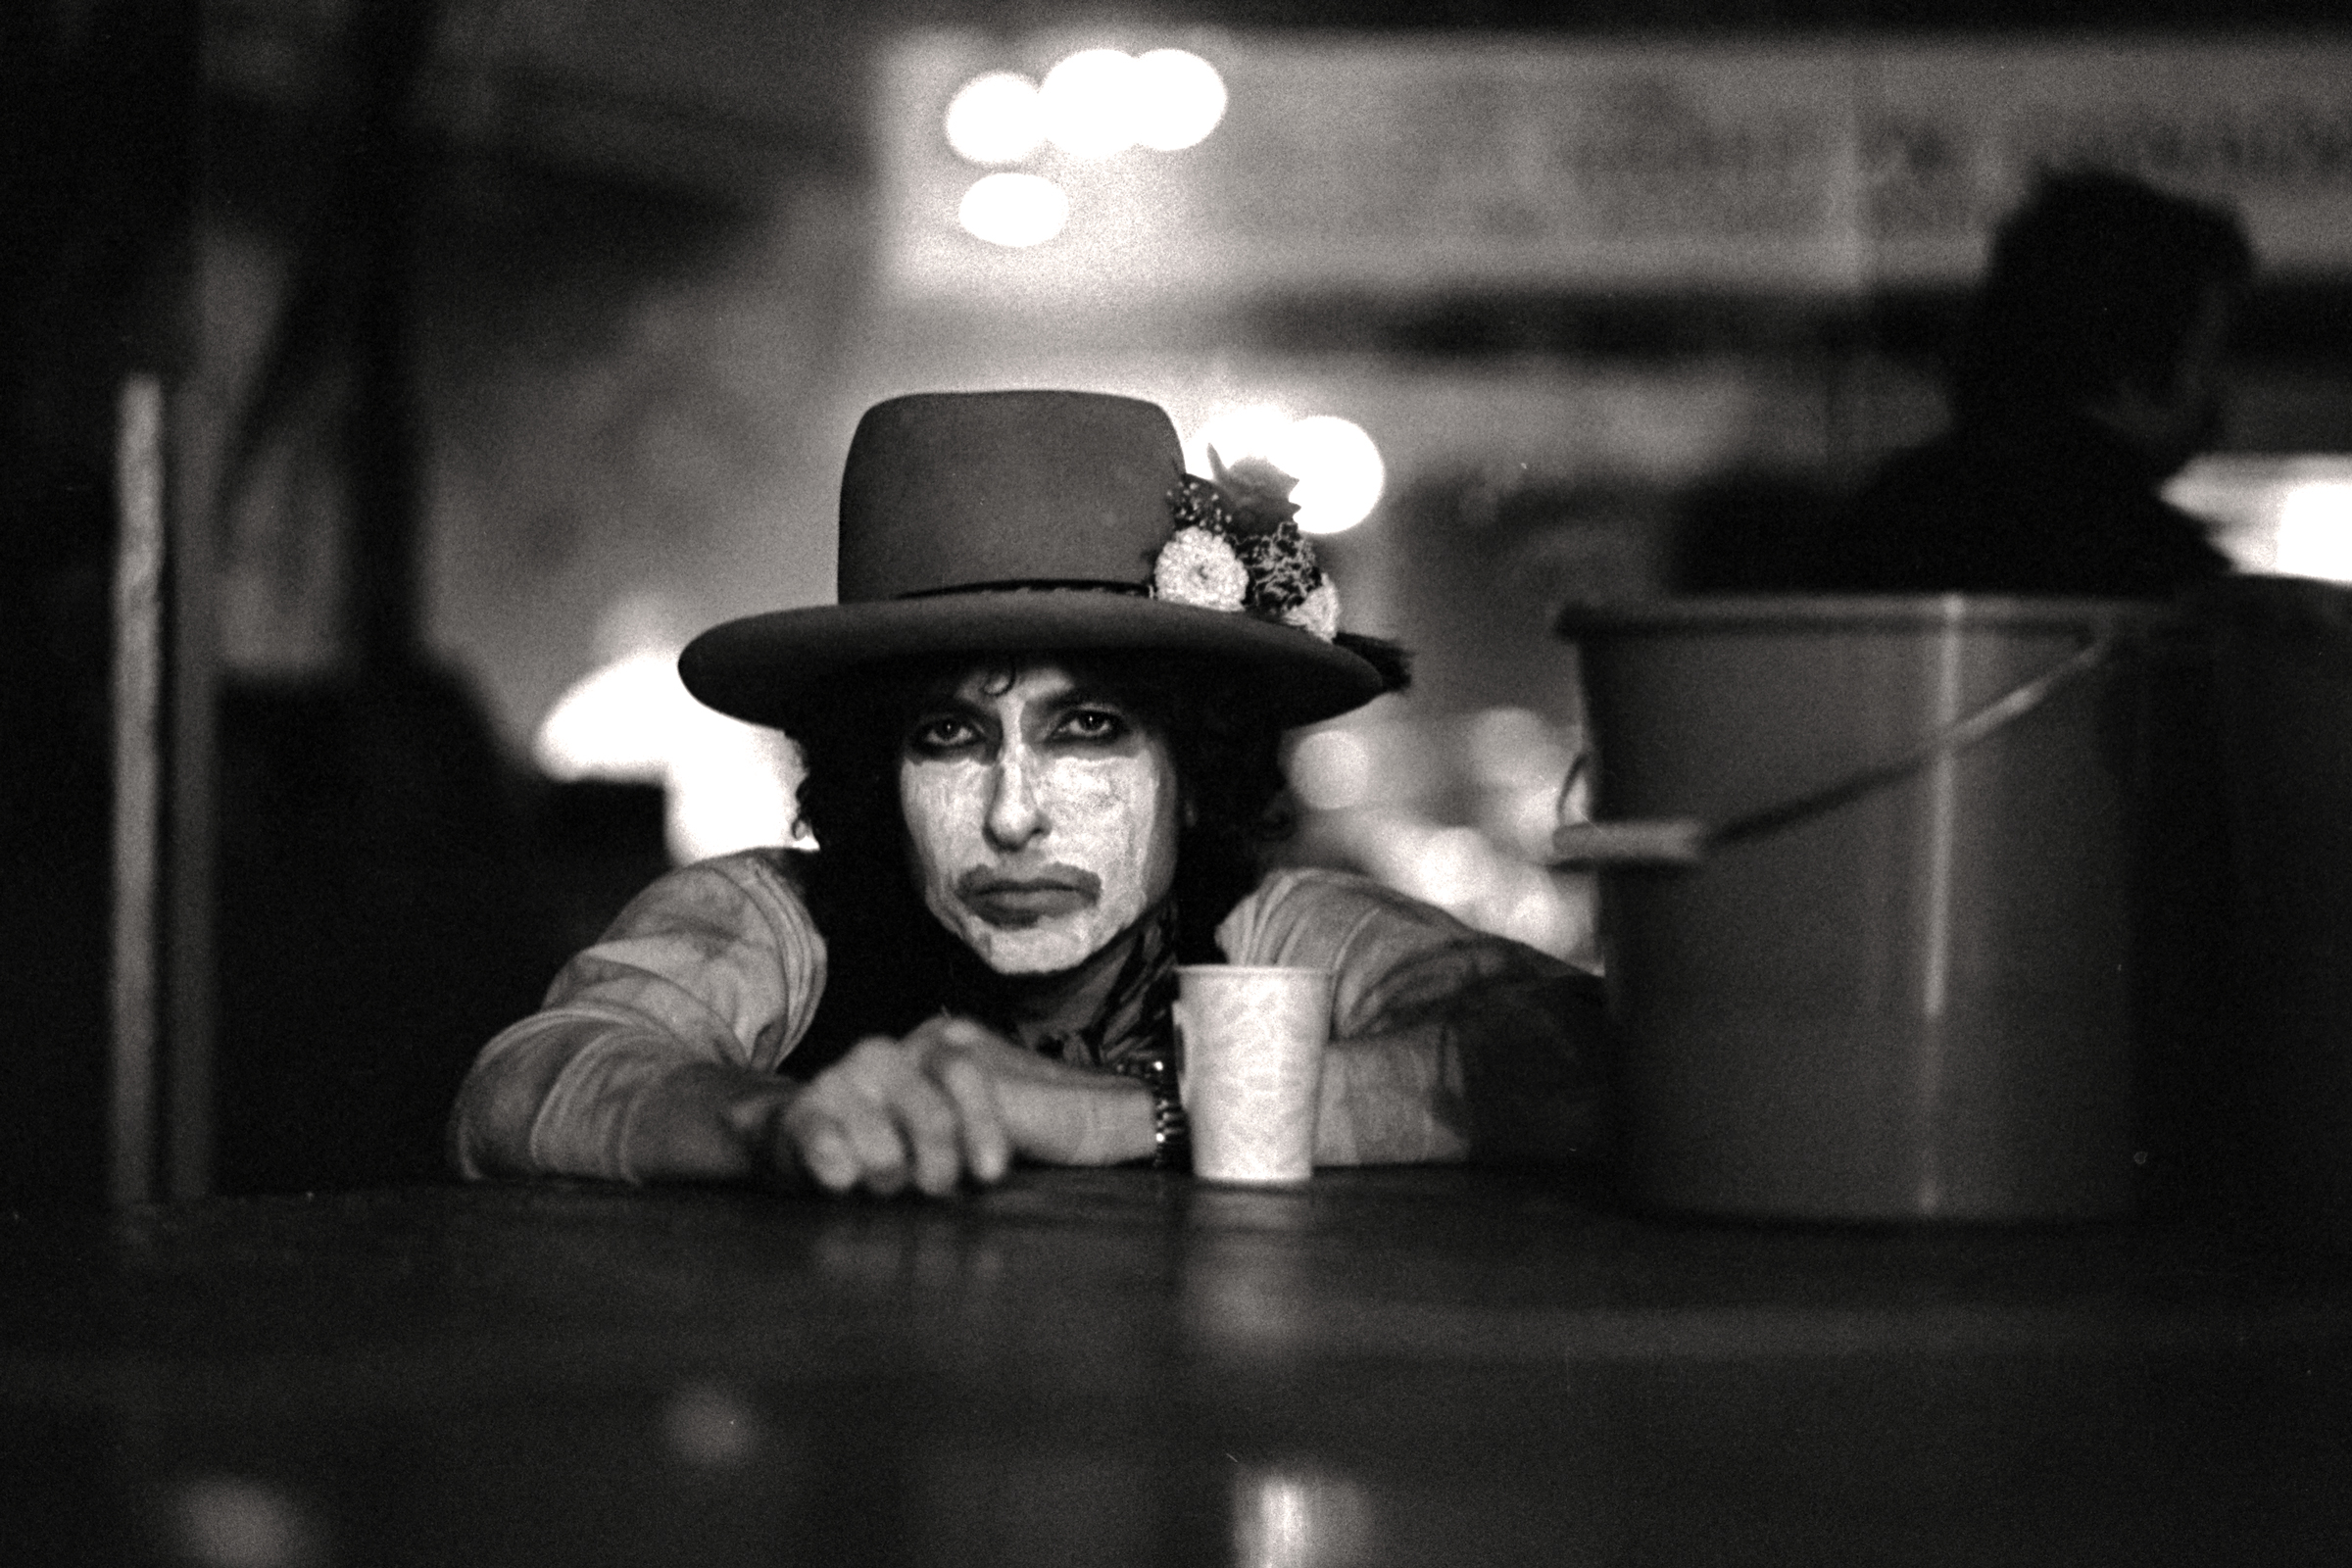 The Inside Story of Bob Dylan and Martin Scorsese's New 'Rolling Thunder Revue' Doc